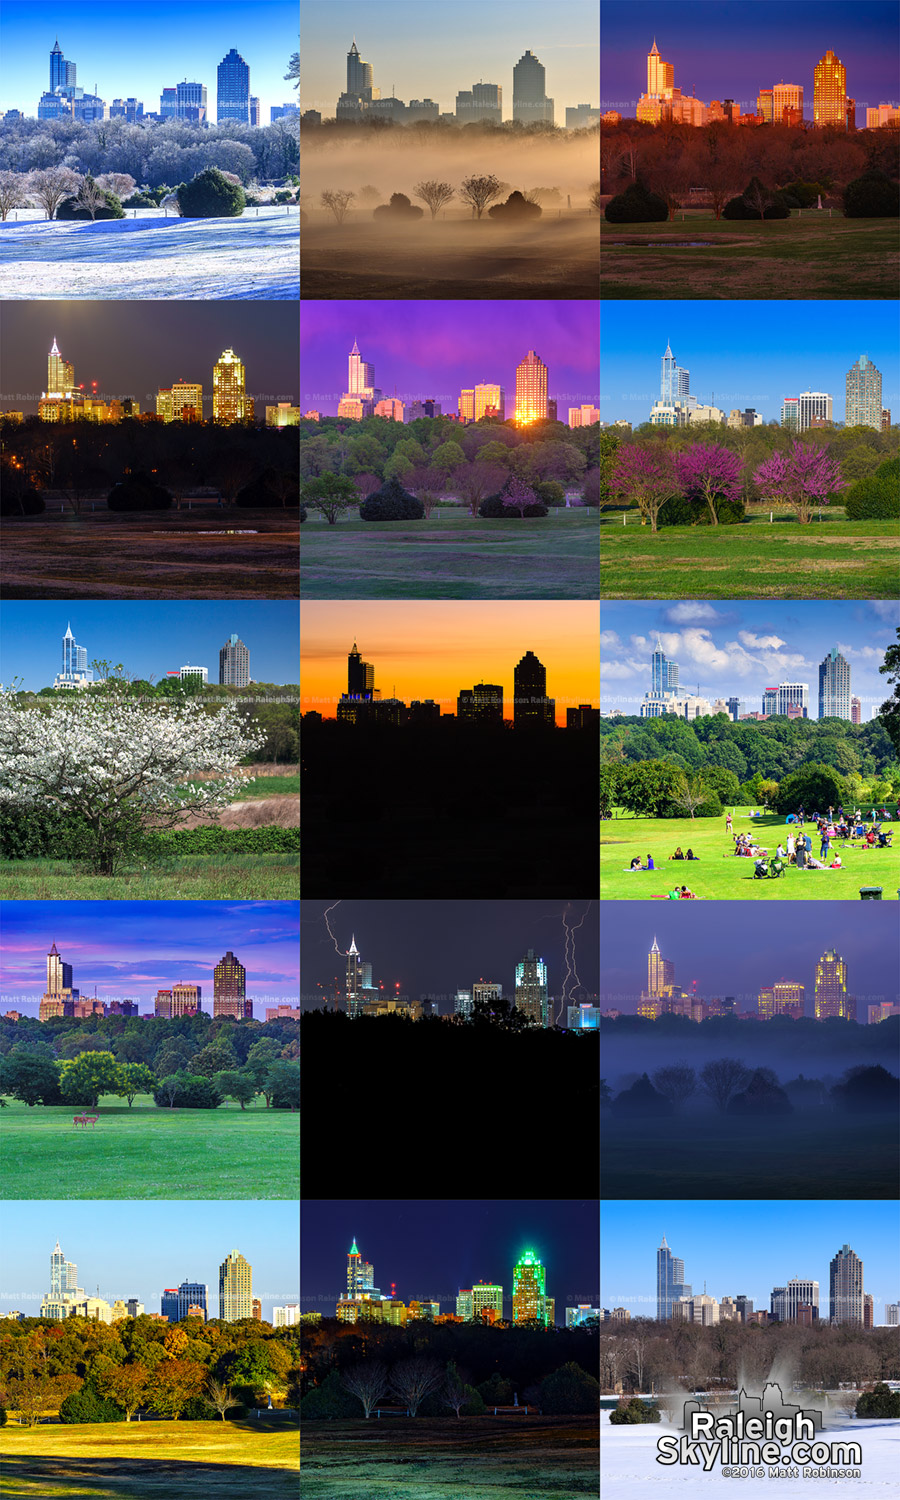 Moods of Raleigh - Raleigh Skyline landscapes from Dorothea Dix Park